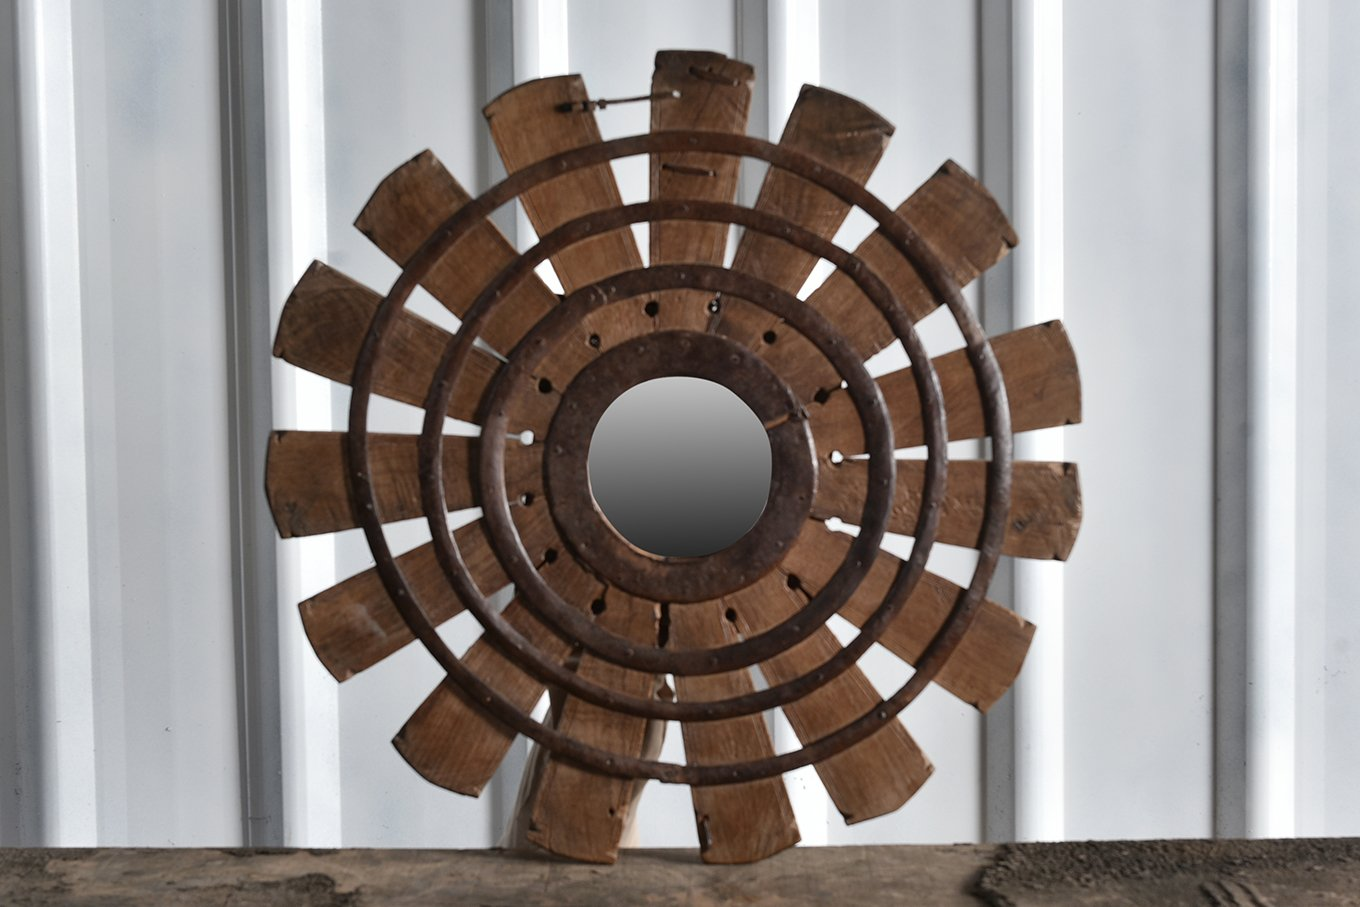 Round mirror made from old wooden barrel